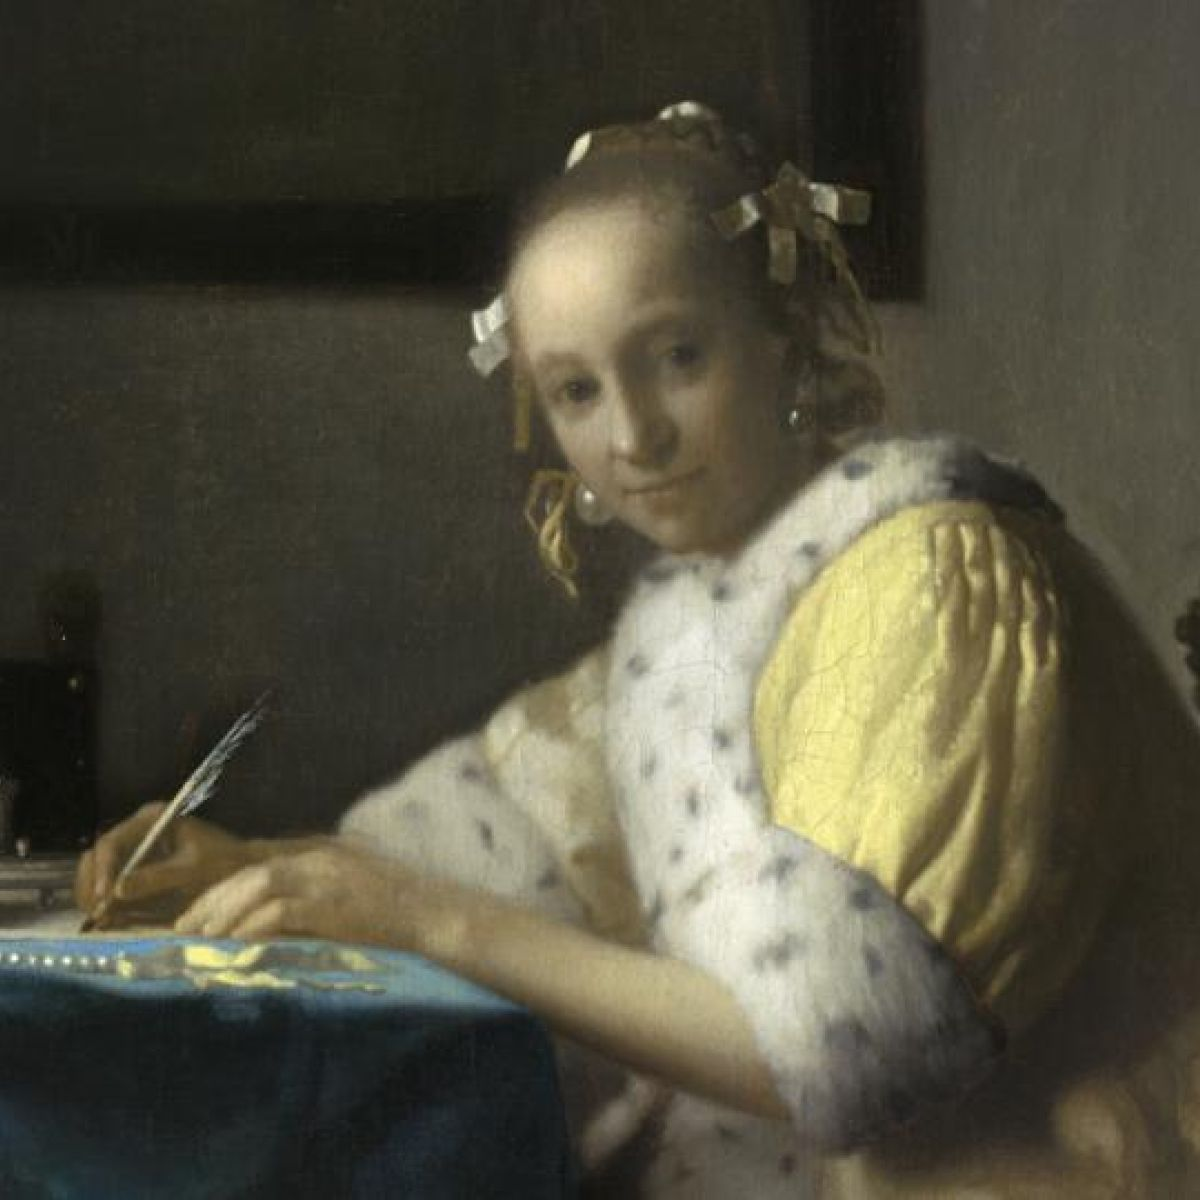 Forget the romance: Vermeer was a modern artist